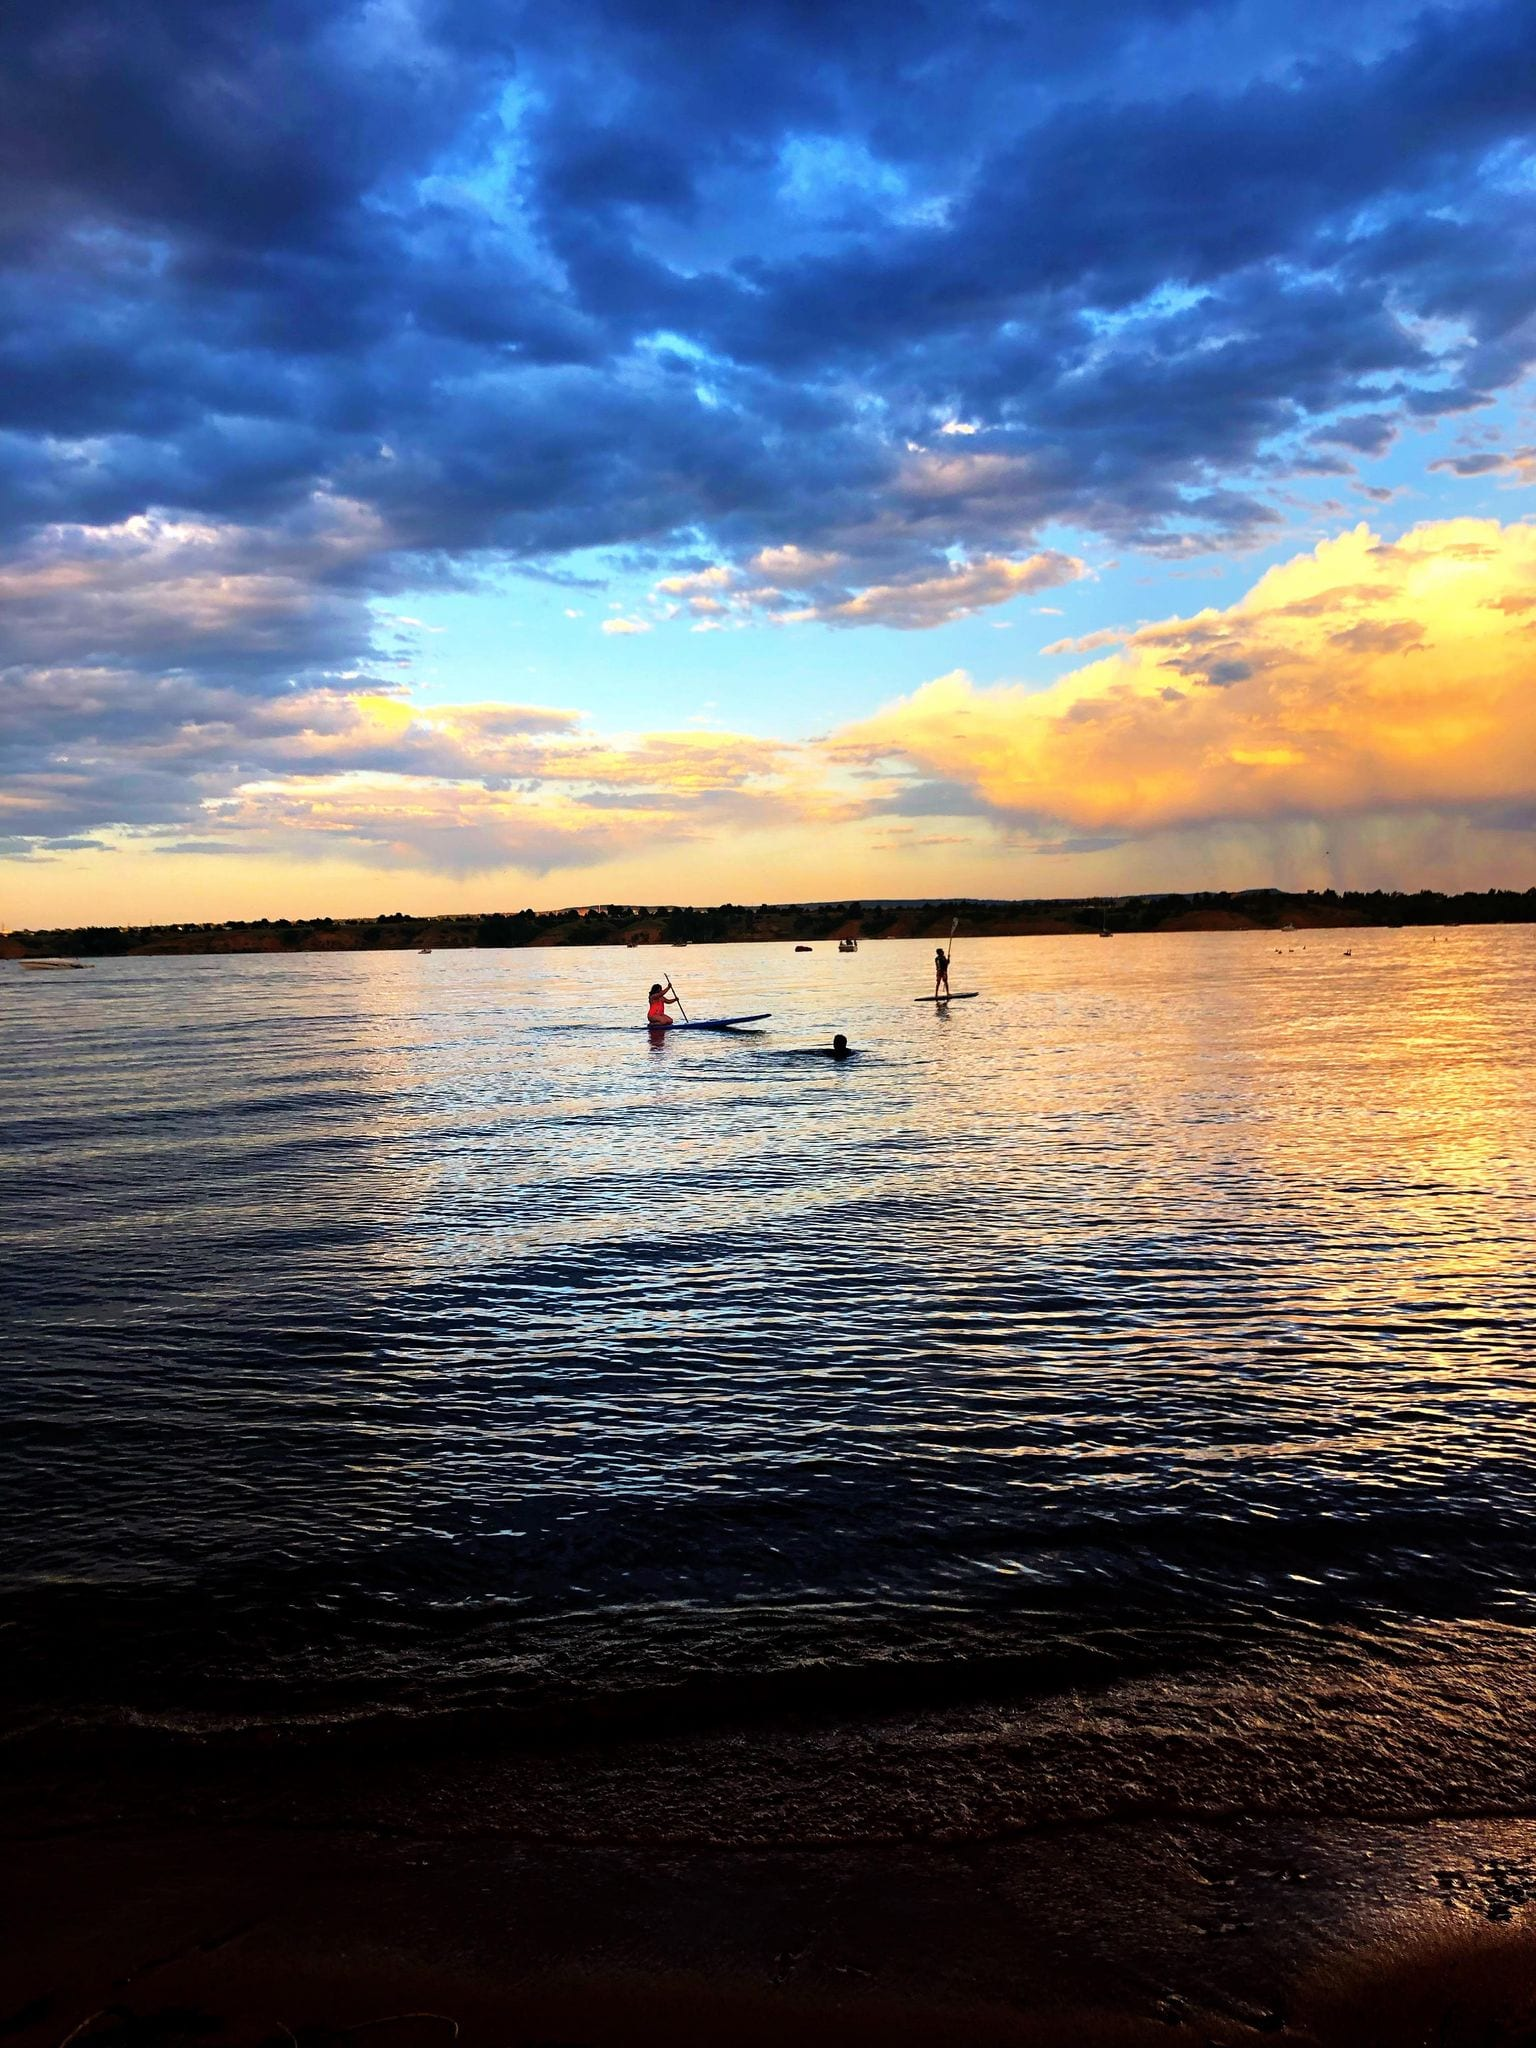 image of people paddle boarding